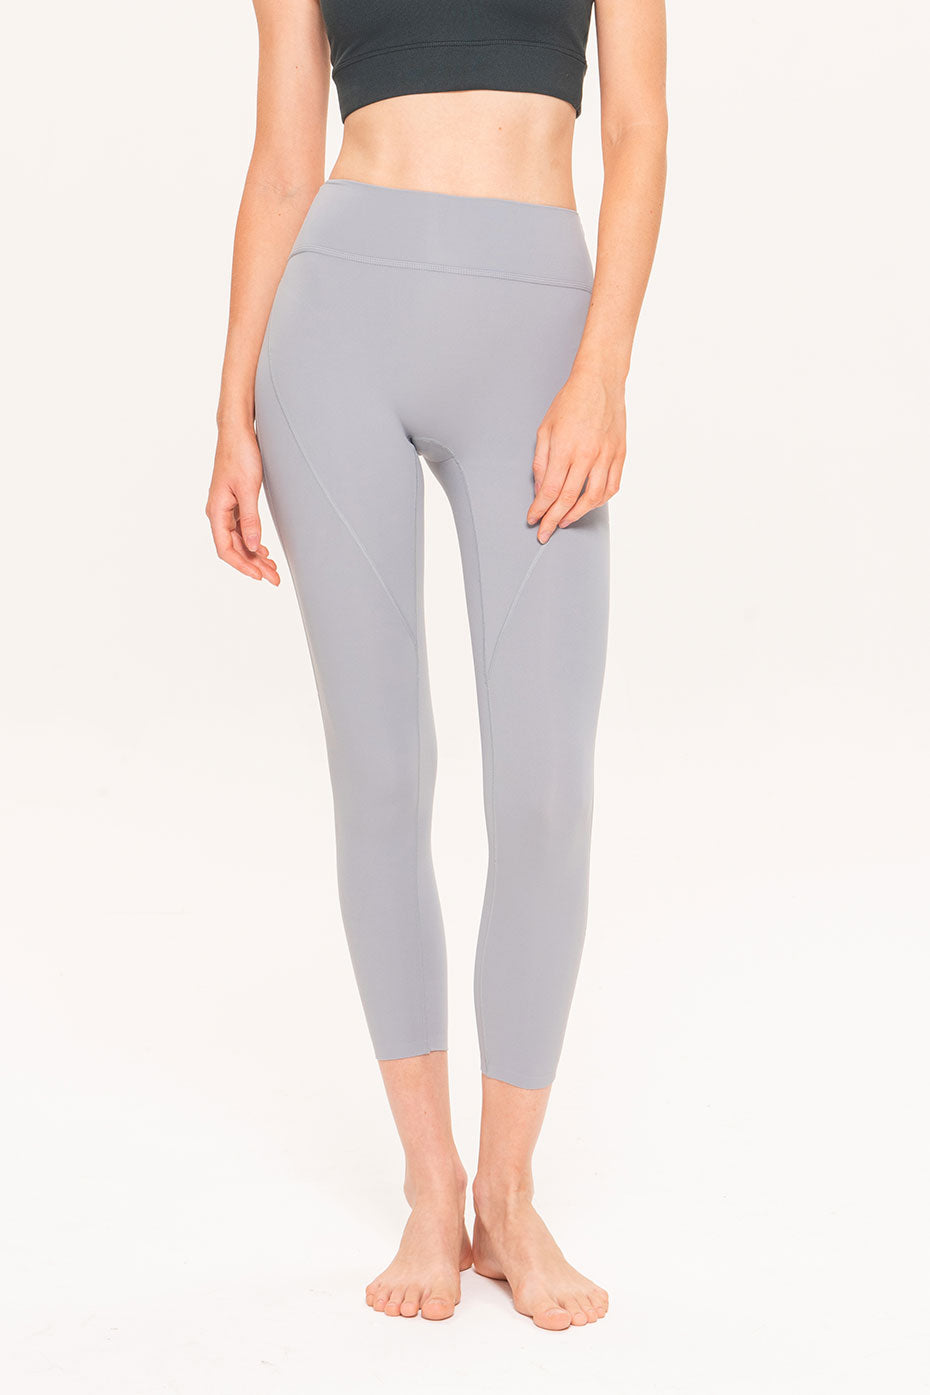 3/4 High-Waist Allev Legging